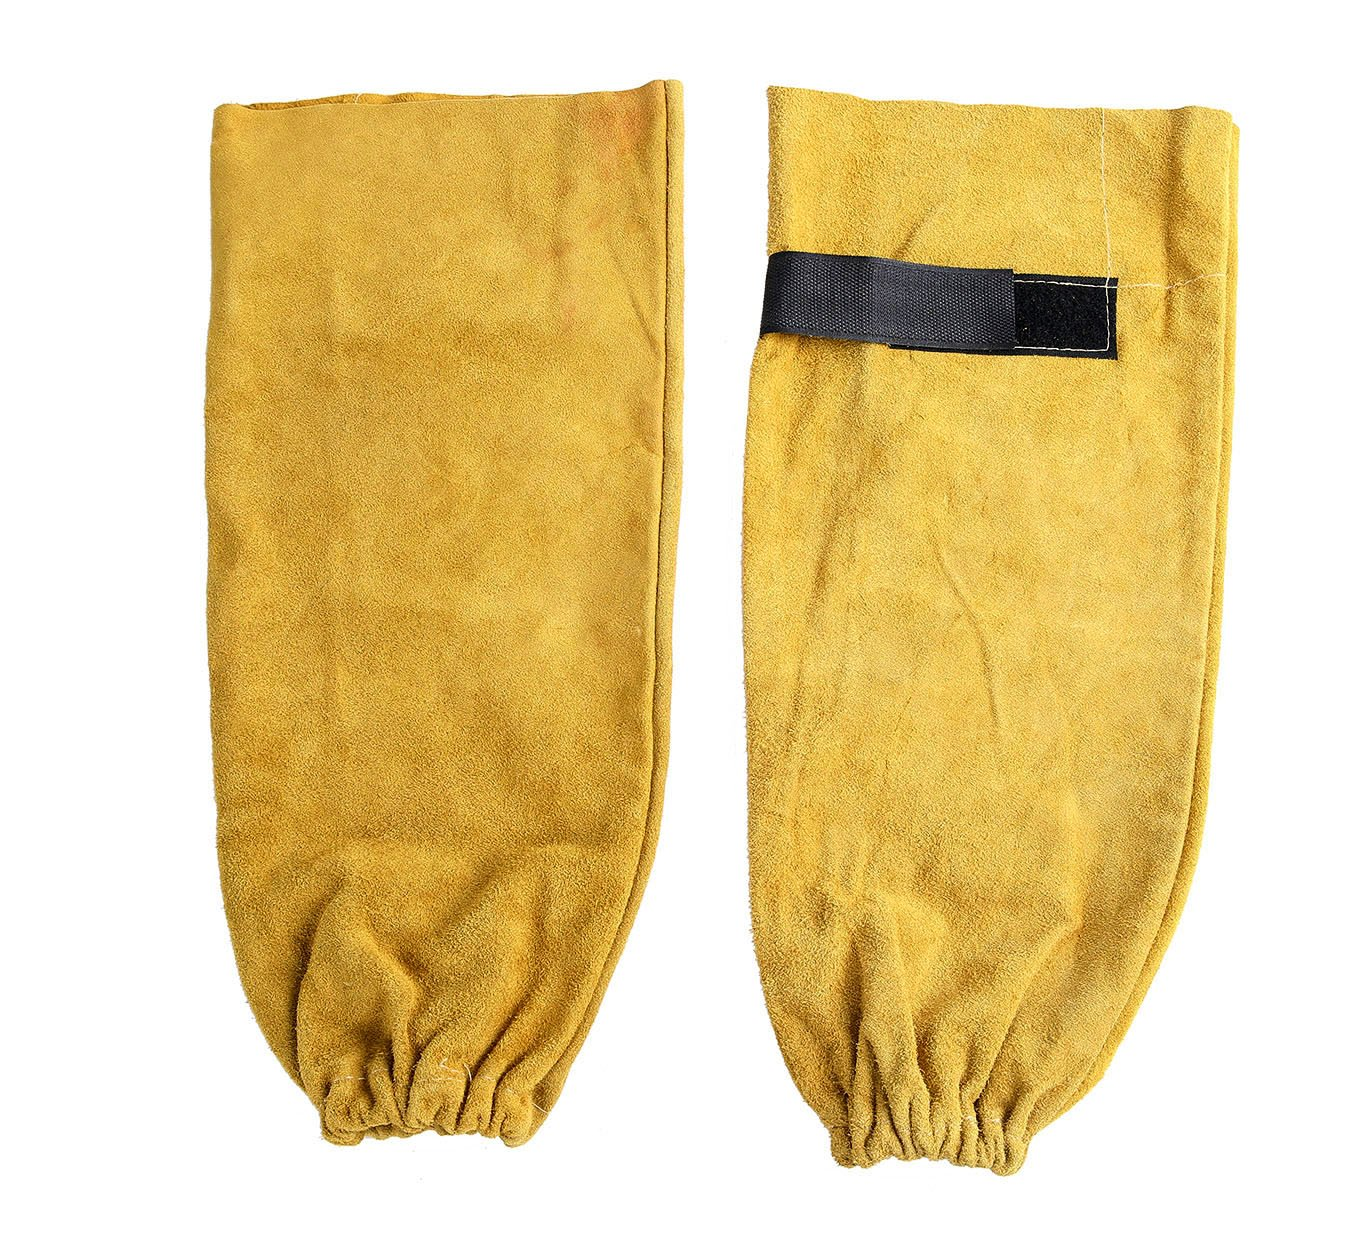 Ouzong Heat Resistant Leather Welding Sleeves with Elastic Cuff Welding Apparel for Welding Glass Transport and Processing 18'' Golden Brown